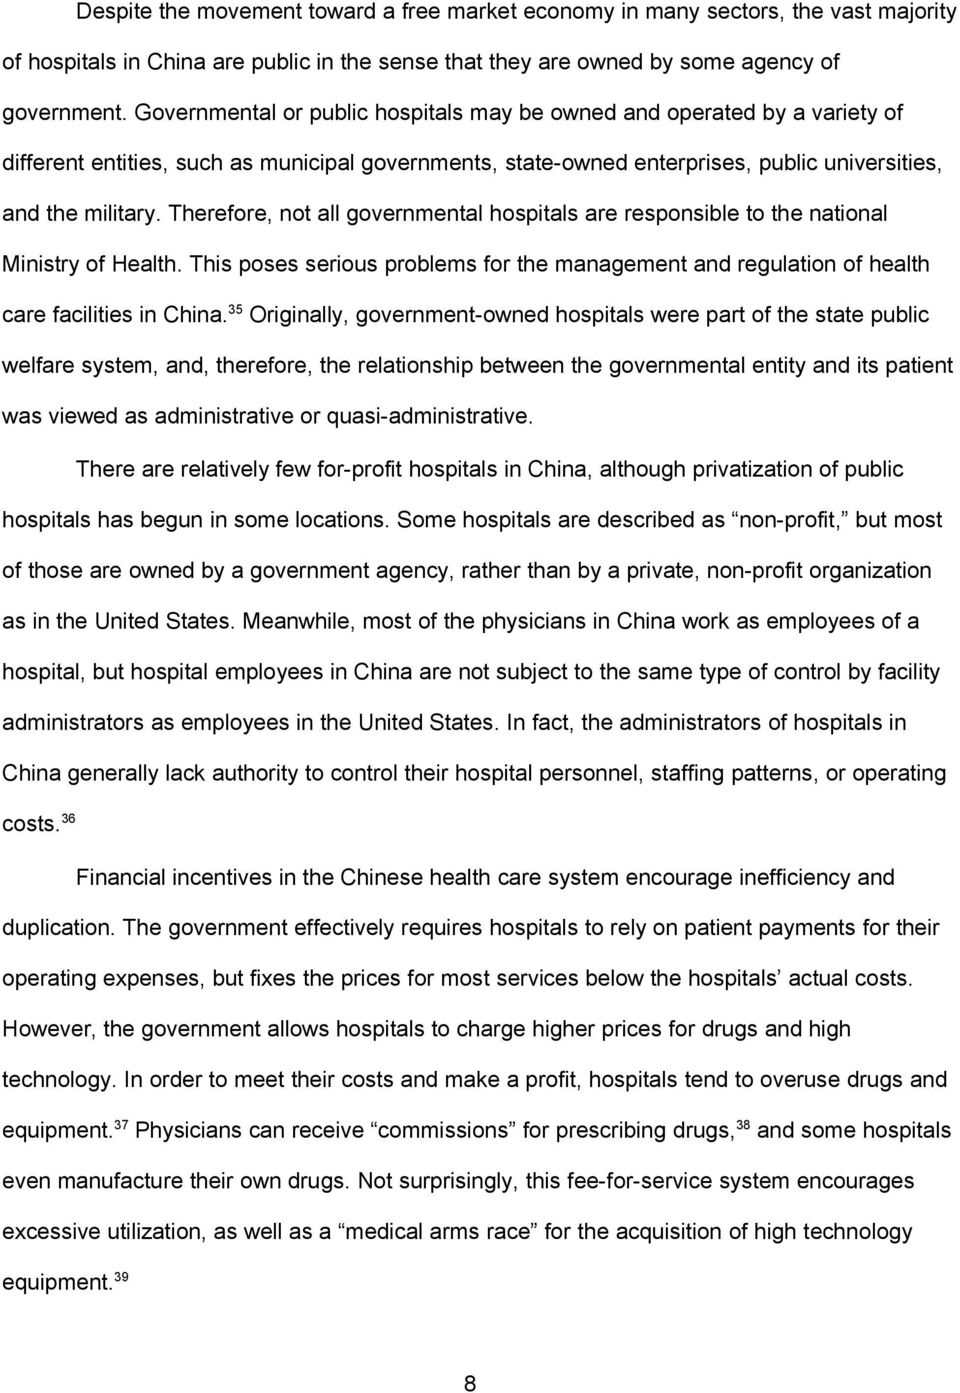 Therefore, not all governmental hospitals are responsible to the national Ministry of Health. This poses serious problems for the management and regulation of health care facilities in China.